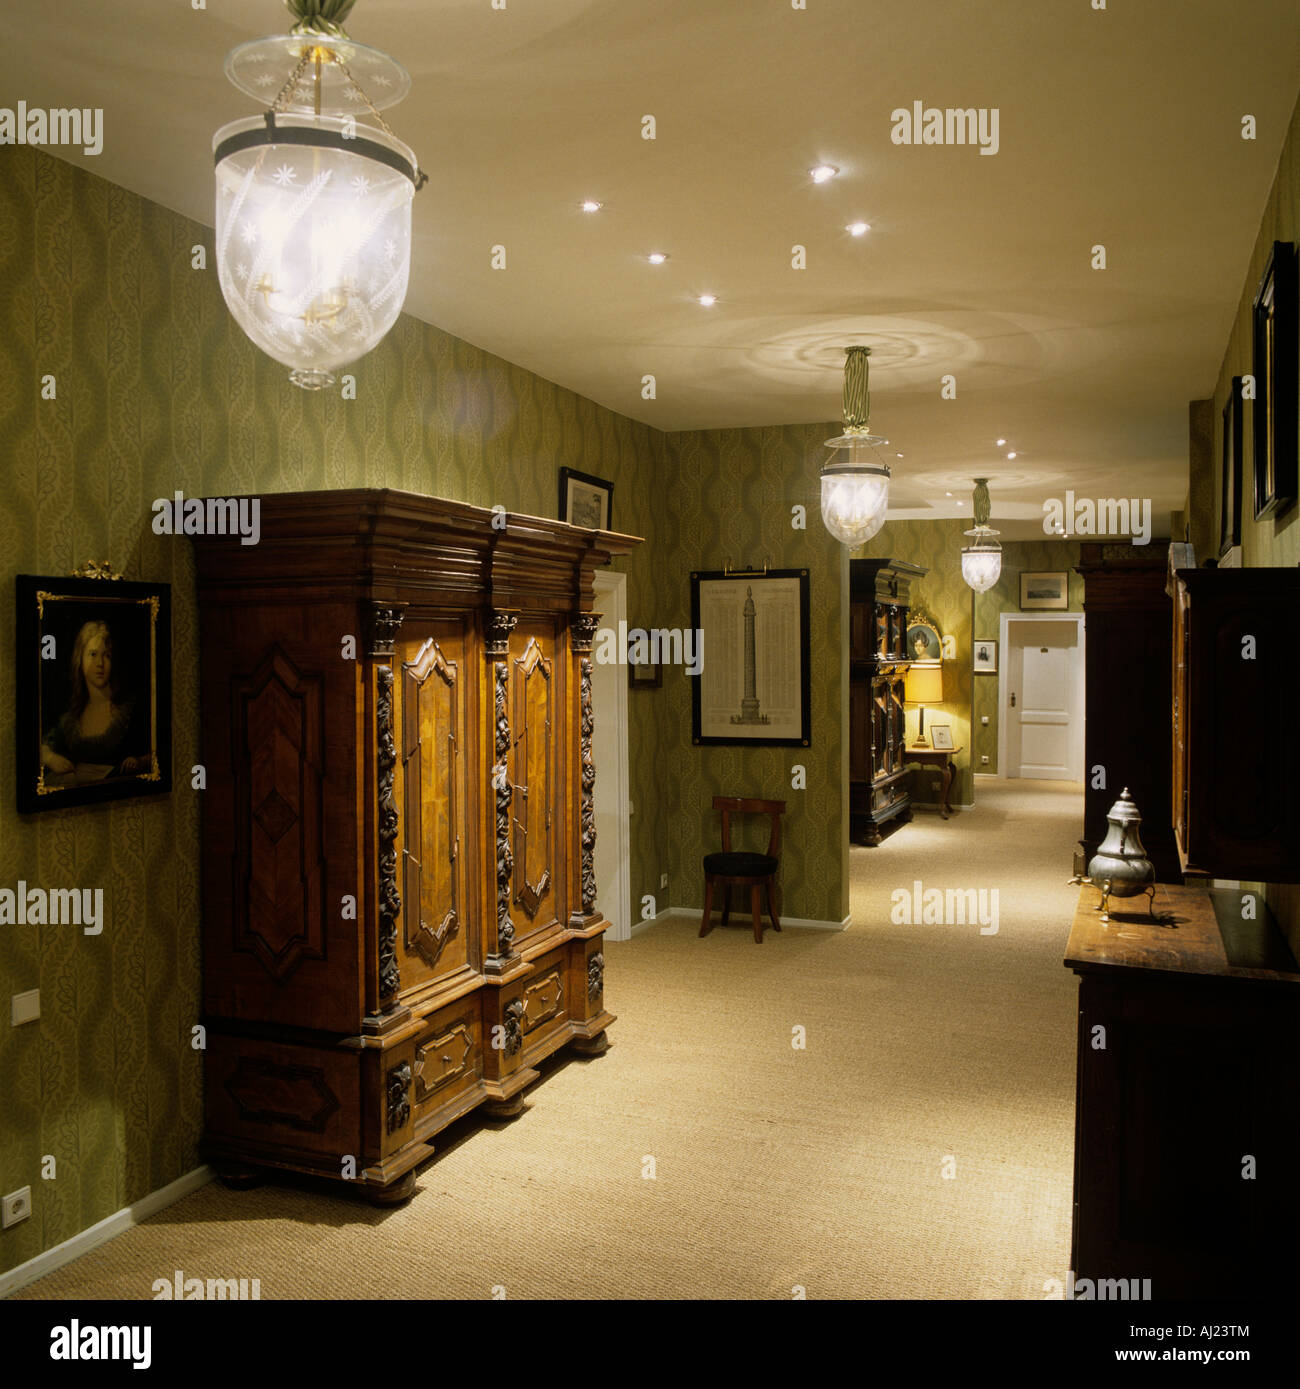 Corridor  hallway with antique wardrobe and old fashioned ceiling